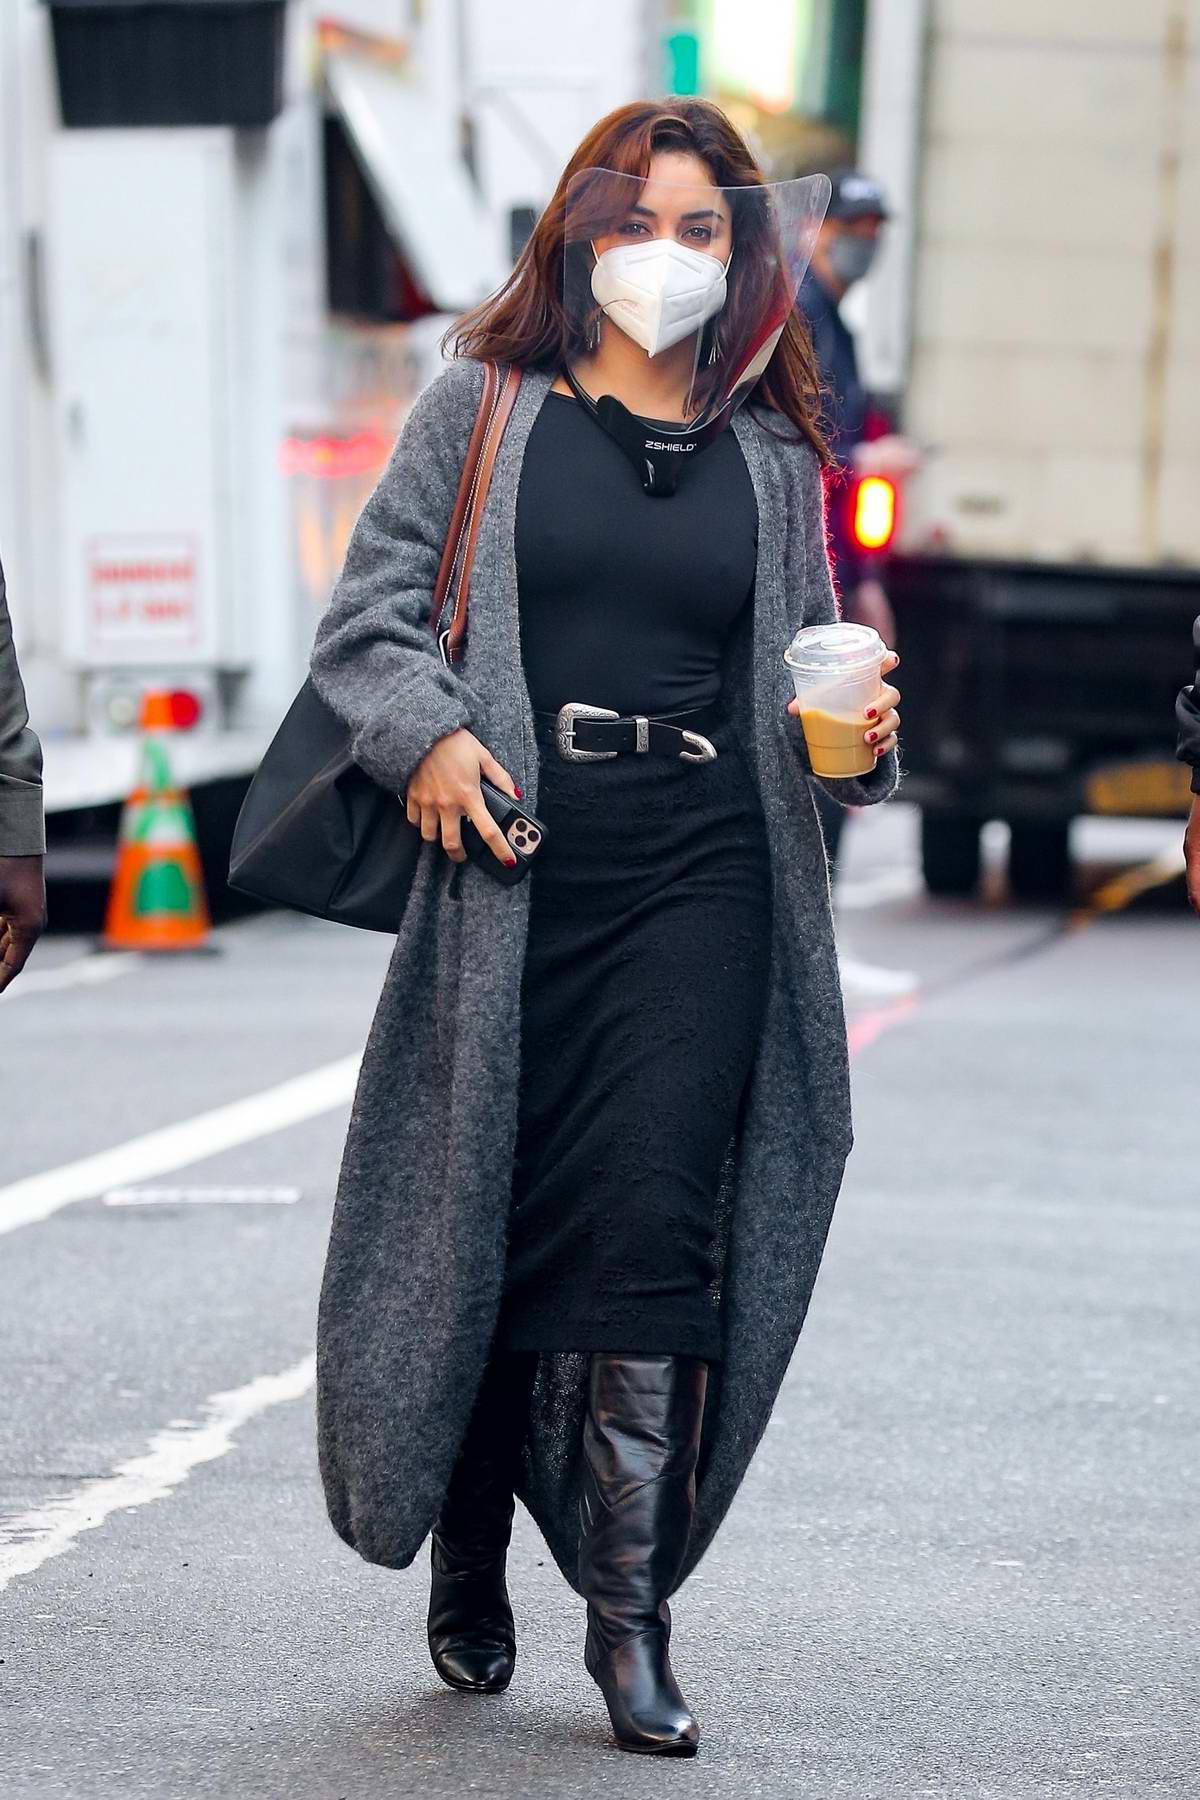 Vanessa Hudgens dons all-black as she arrives holding an iced coffee on the set of 'Tick, Tick...Boom!' in New York City